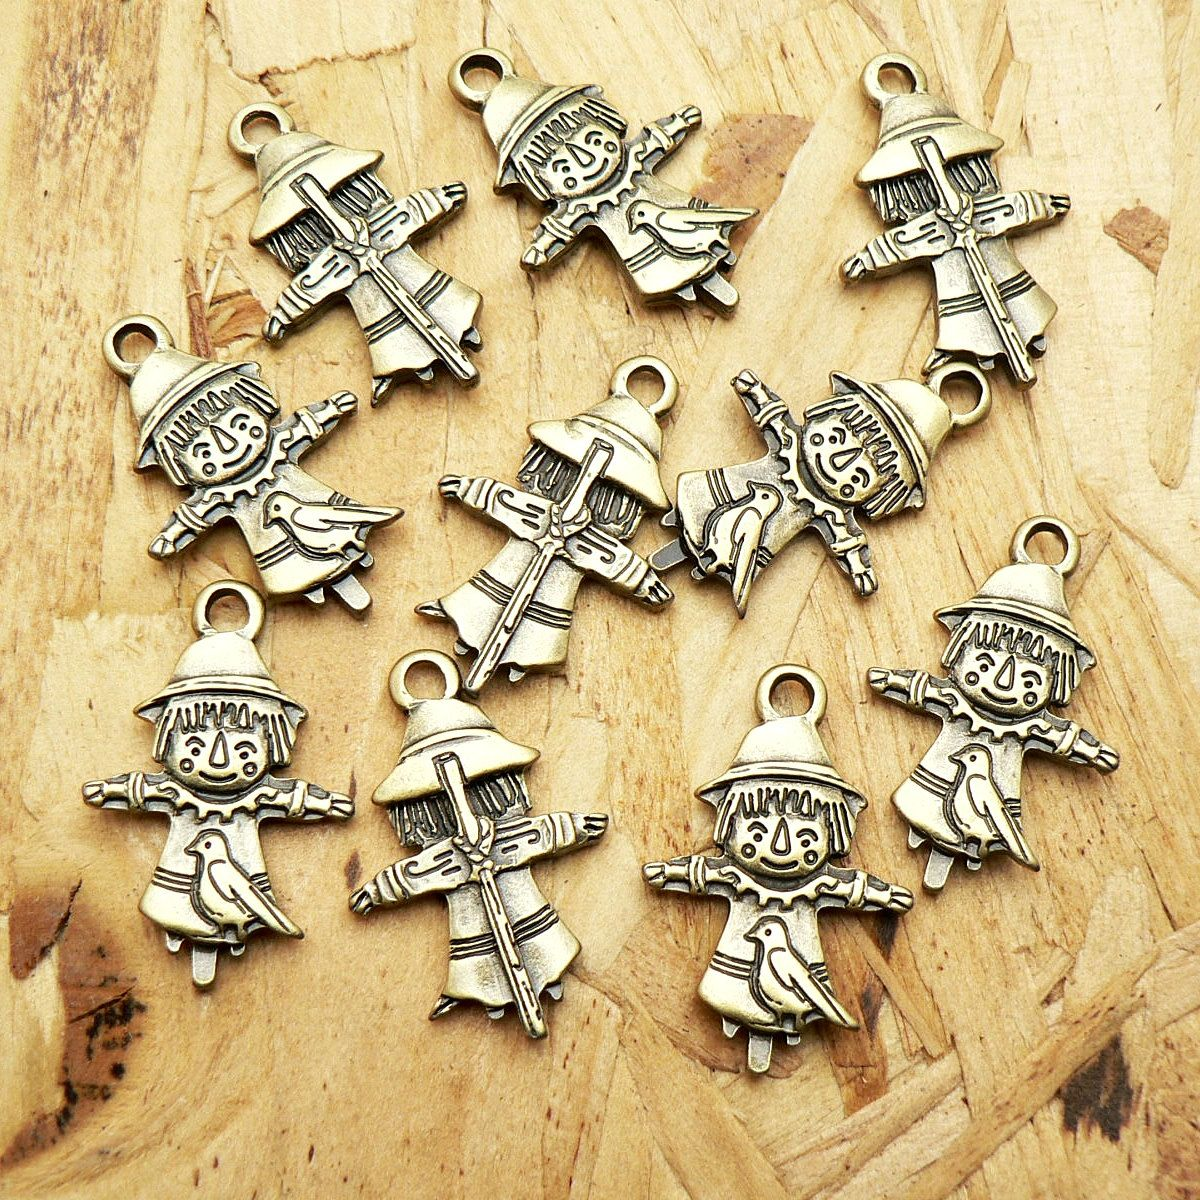 Scarecrow Charms Antique Brass Tone 2 Side A272 by CharmShopCrafts on Etsy